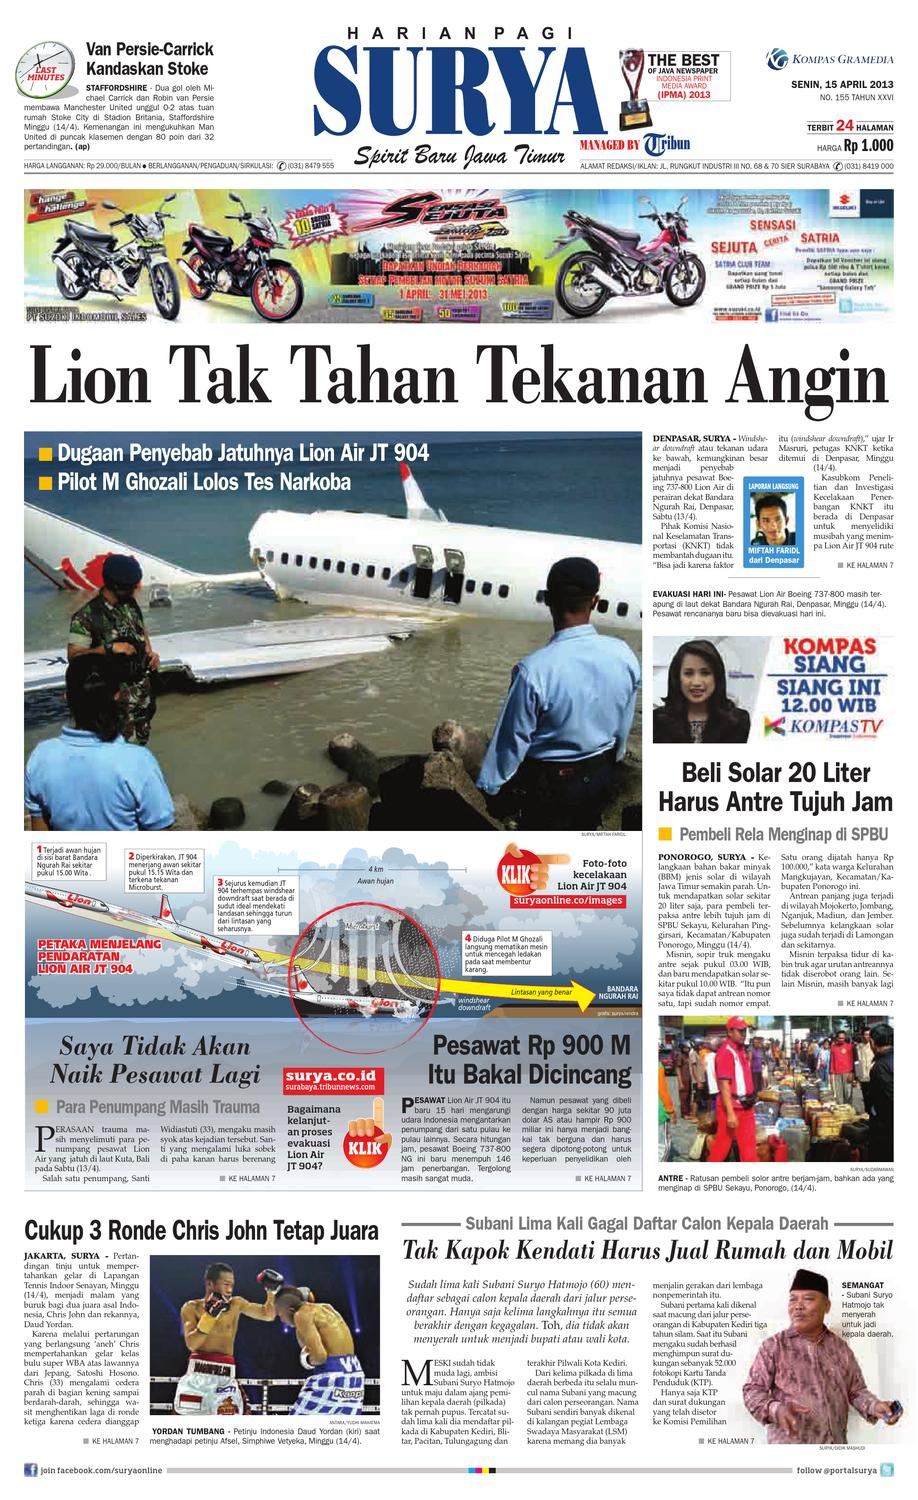 E Paper Surya Edisi 15 April 2013 By Harian SURYA Issuu